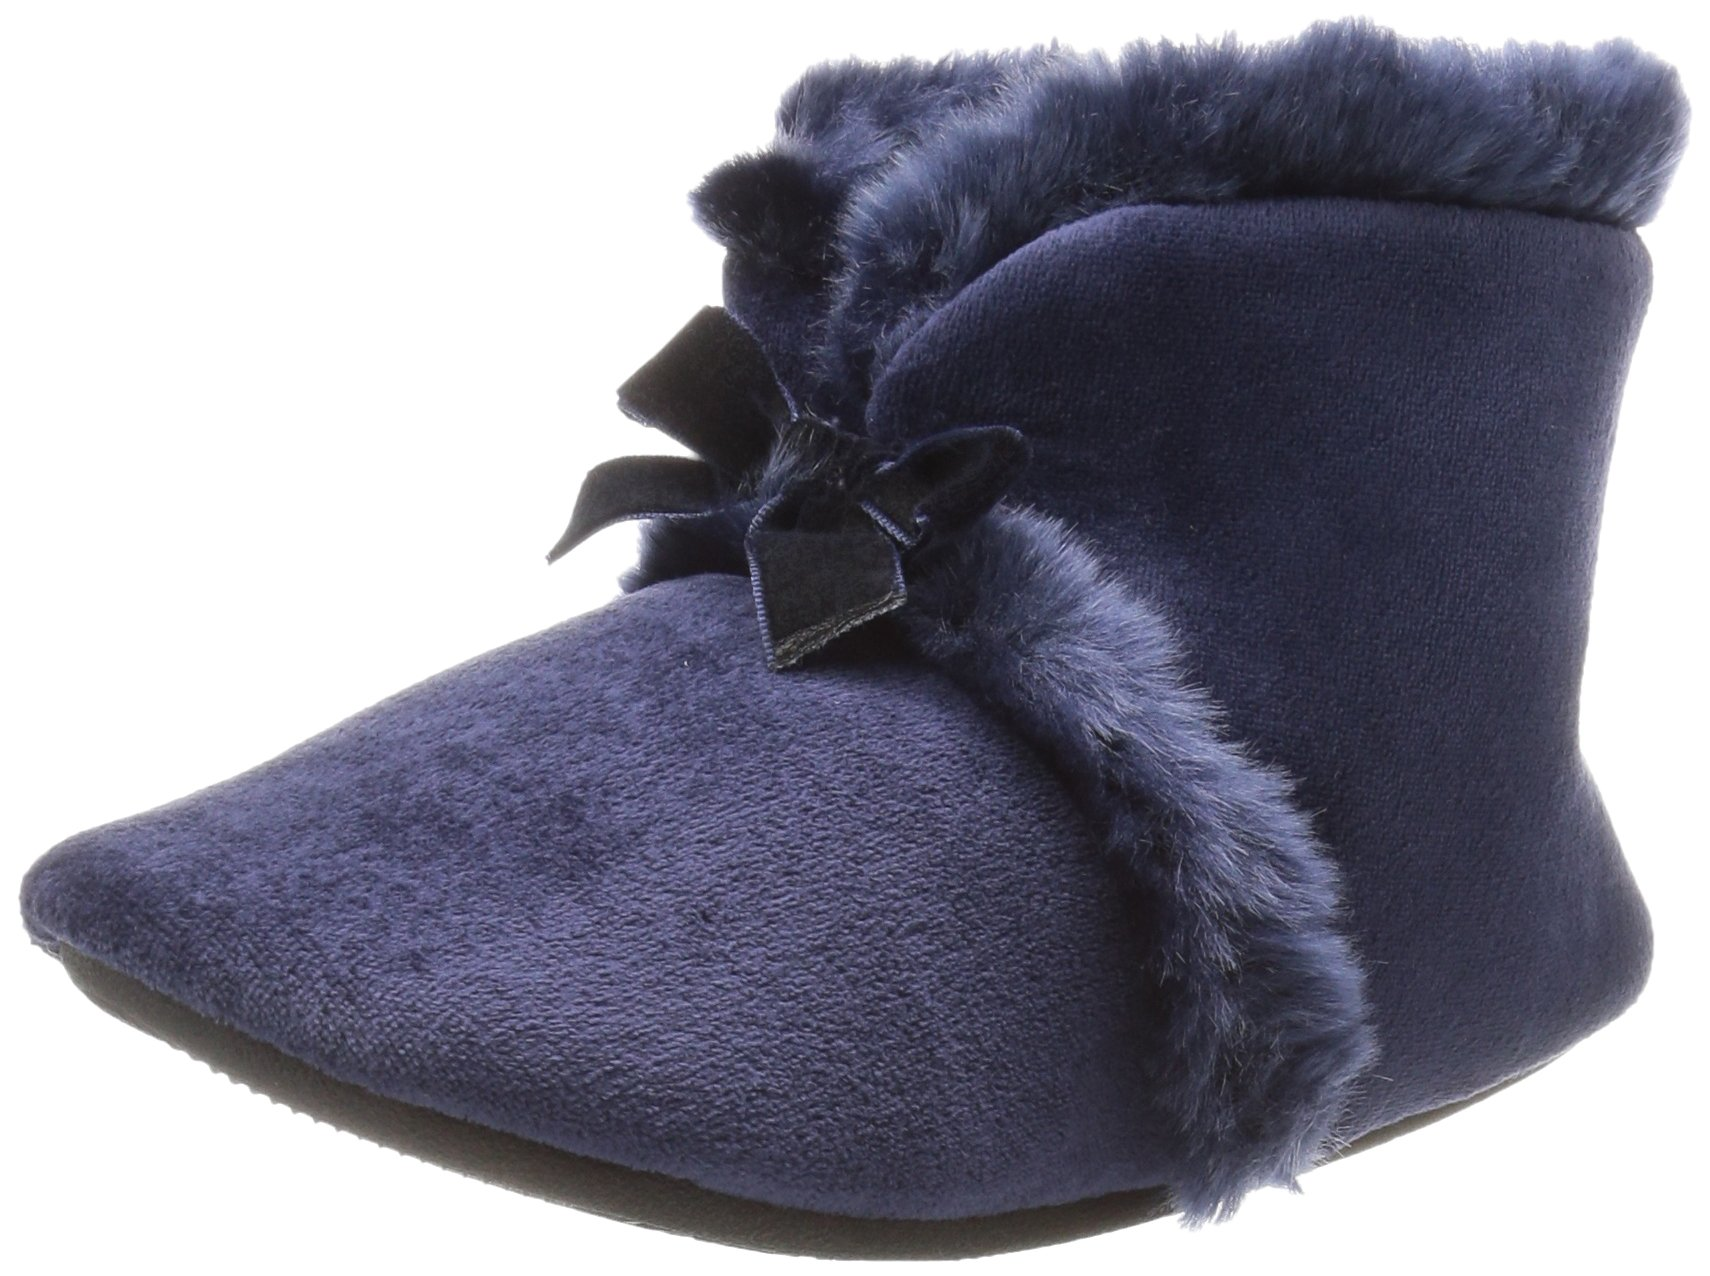 ISOTONER Women's Velour Diane Bootie Slippers, Navy Blue, Large/8-9 M US